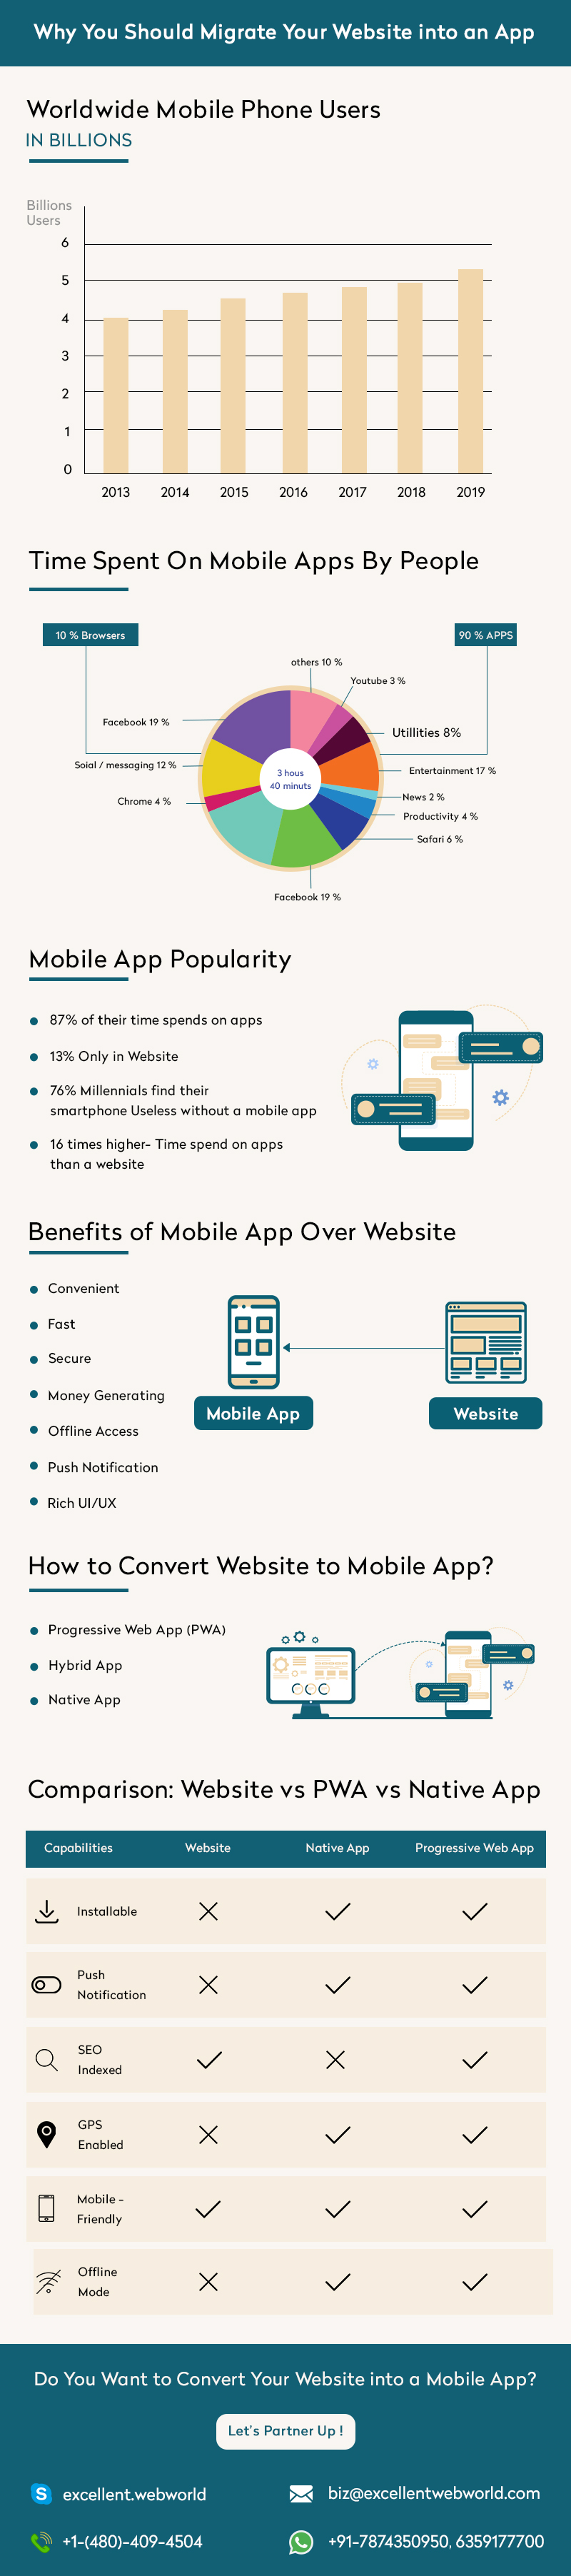 Turn Your Website Into an App Infographic